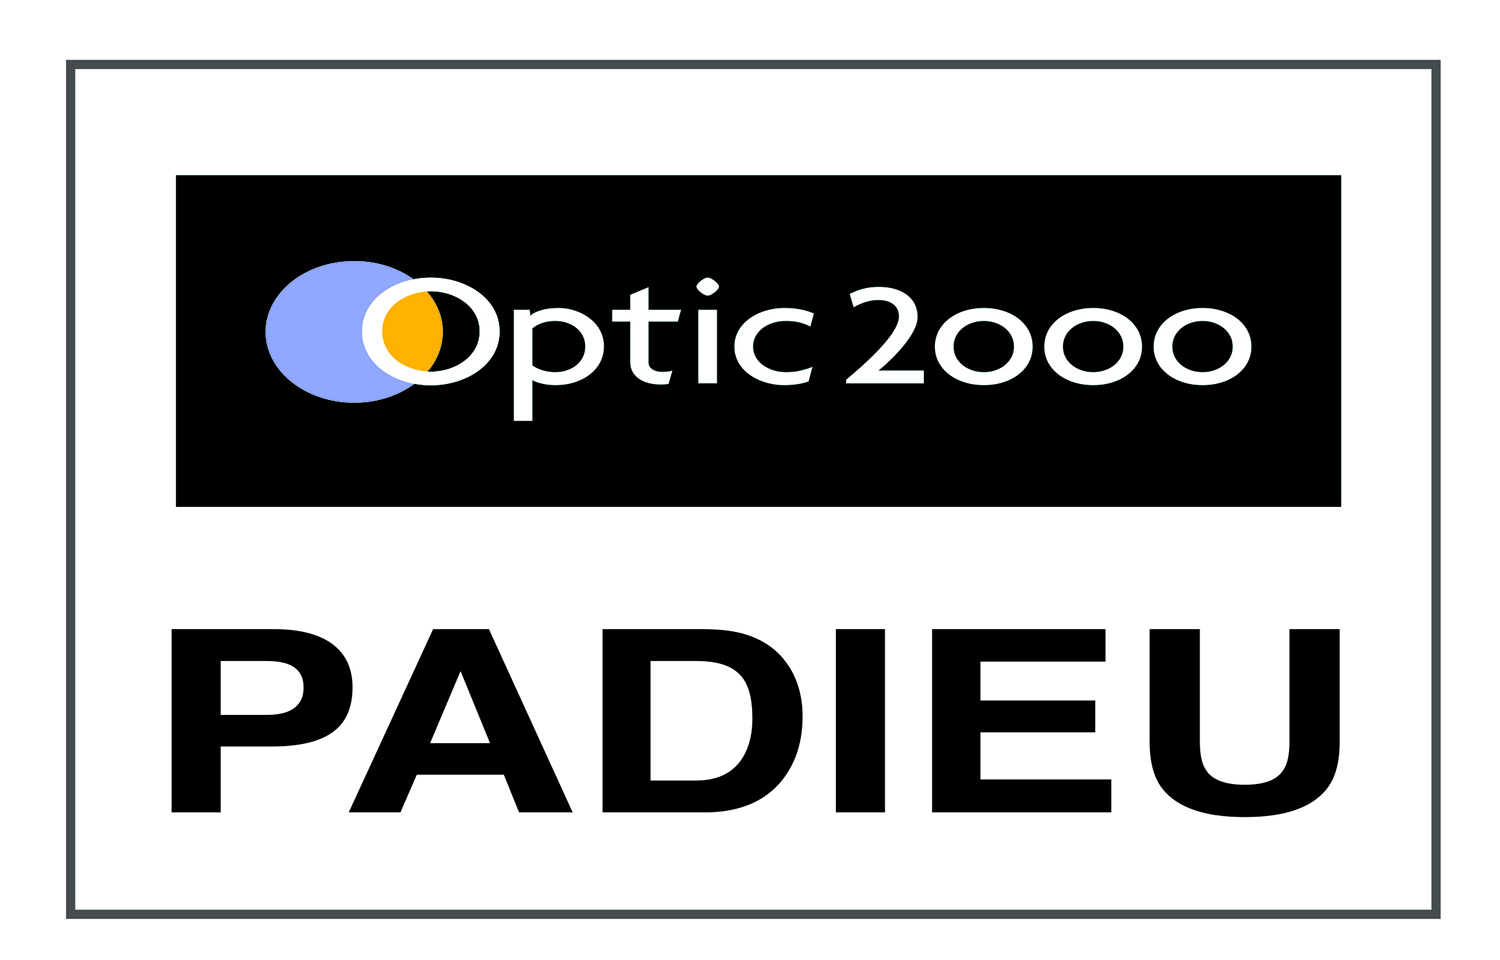 OPTIC.2000.PADIEU